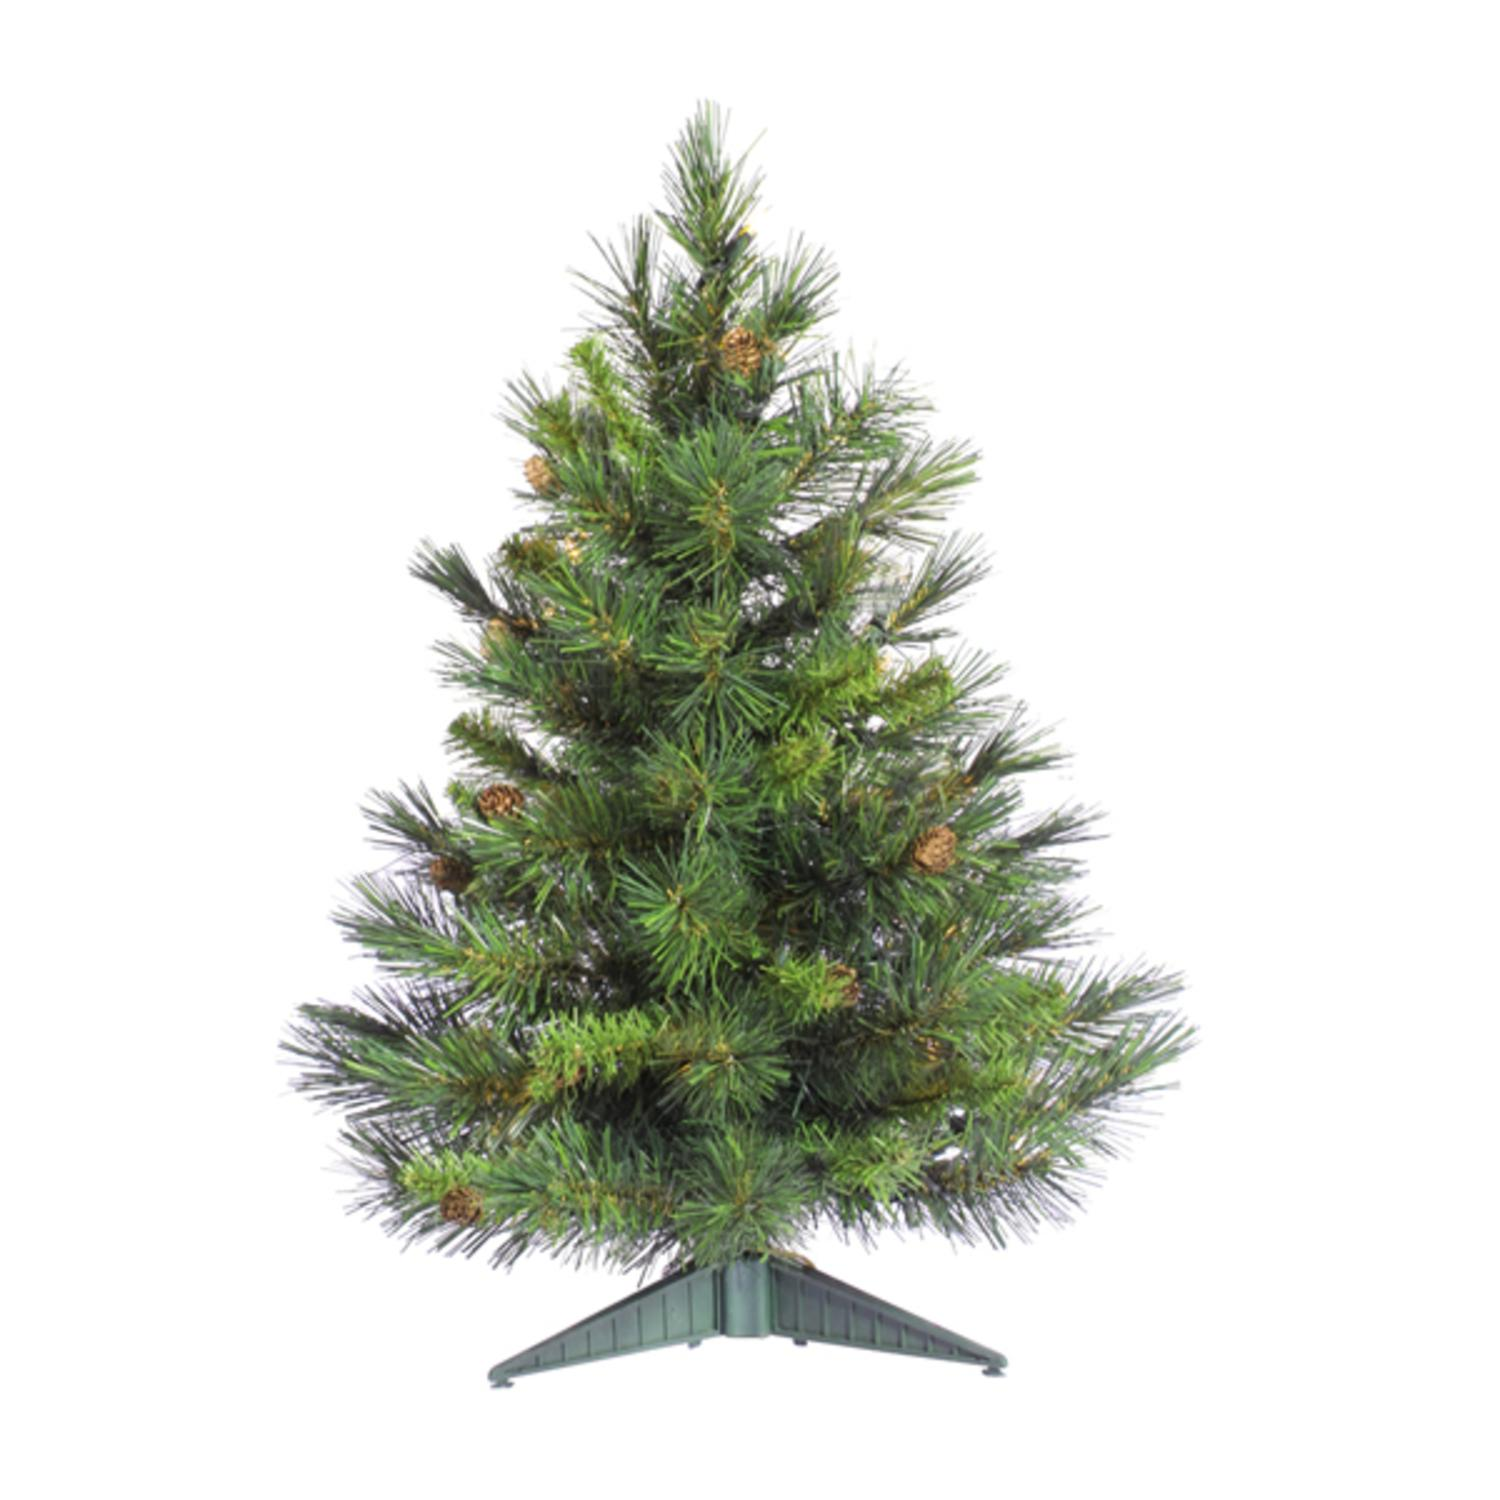 2' Cheyenne Pine Artificial Christmas Tree with Pine Cones - Unlit